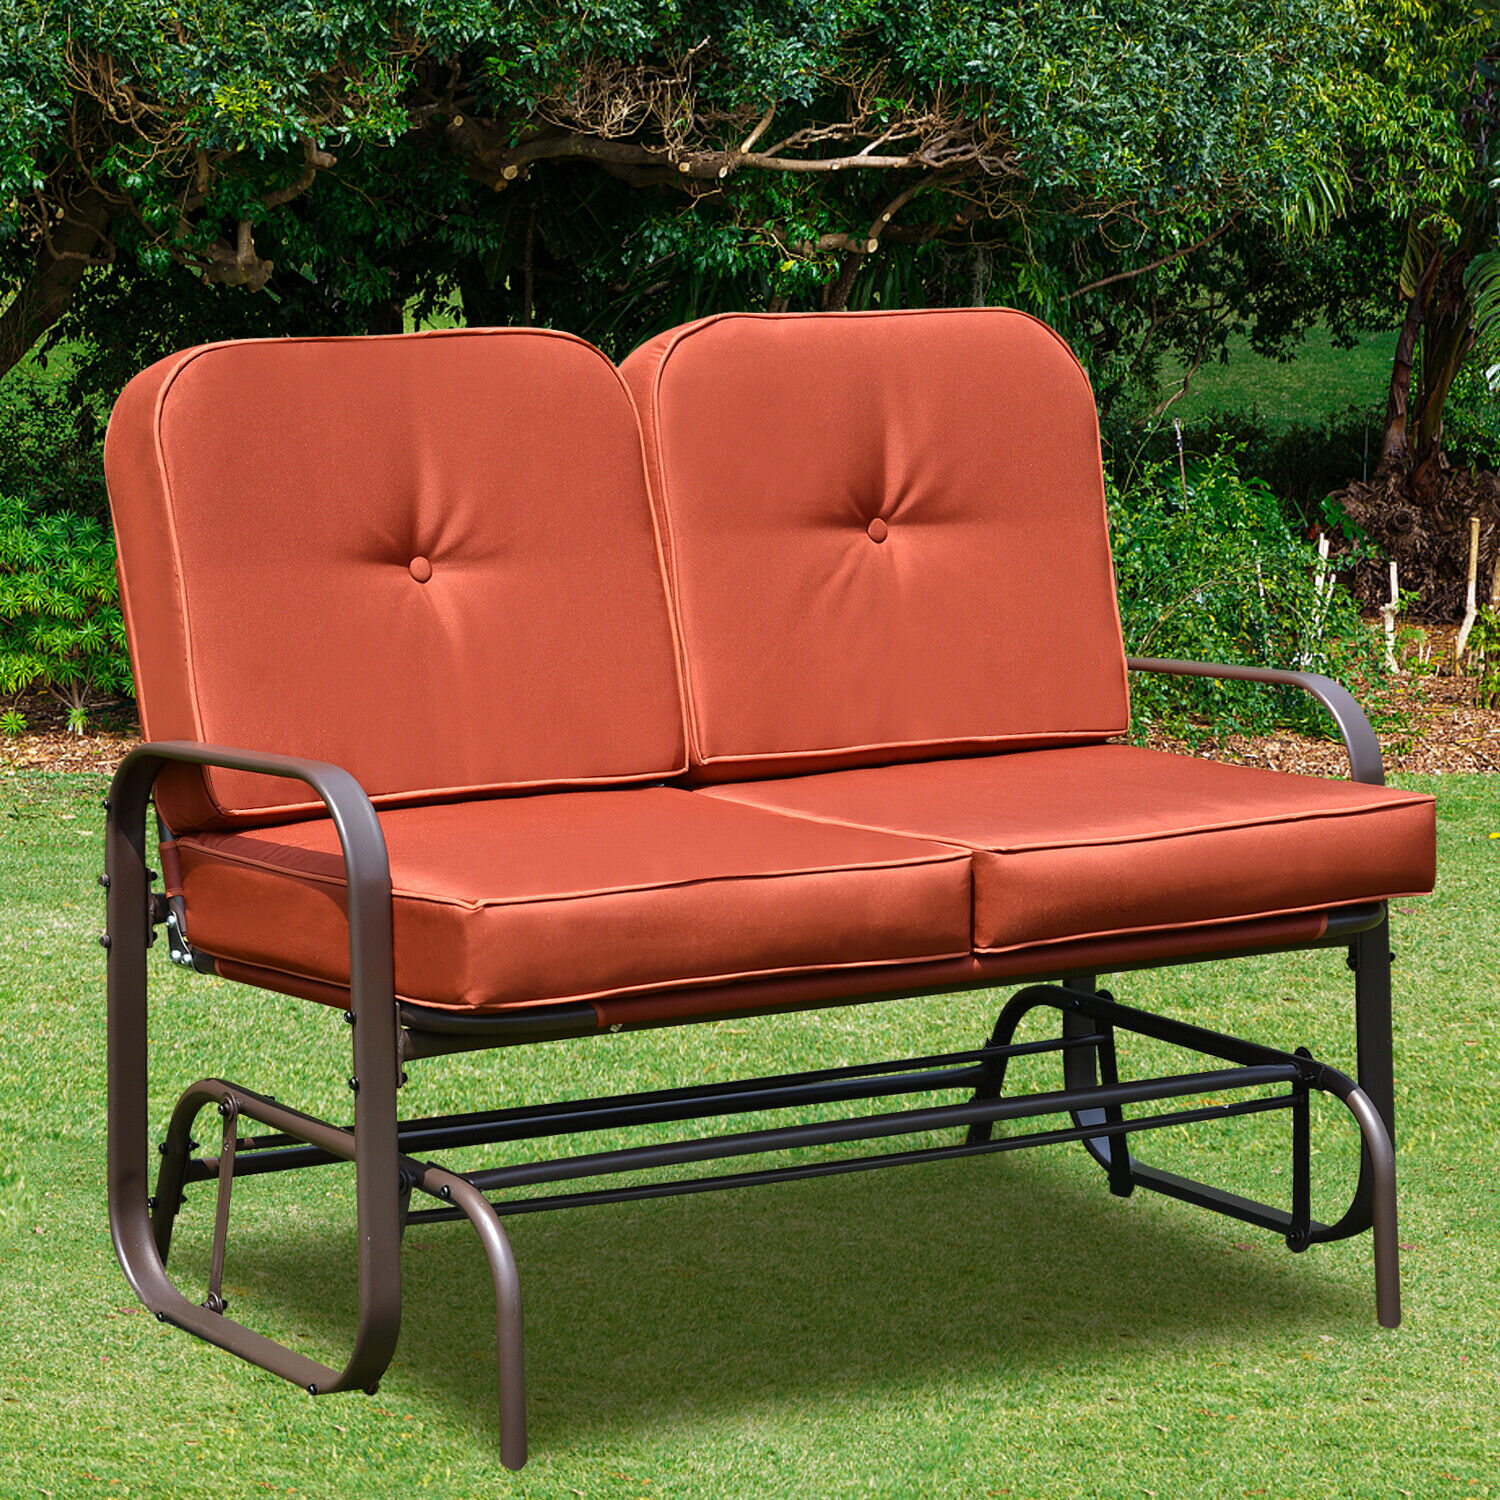 Patio Glider Bench Chair 2 Person Rocker Loveseat Outdoor Furniture W/ Cushions Intended For Center Table Double Glider Benches (View 7 of 25)